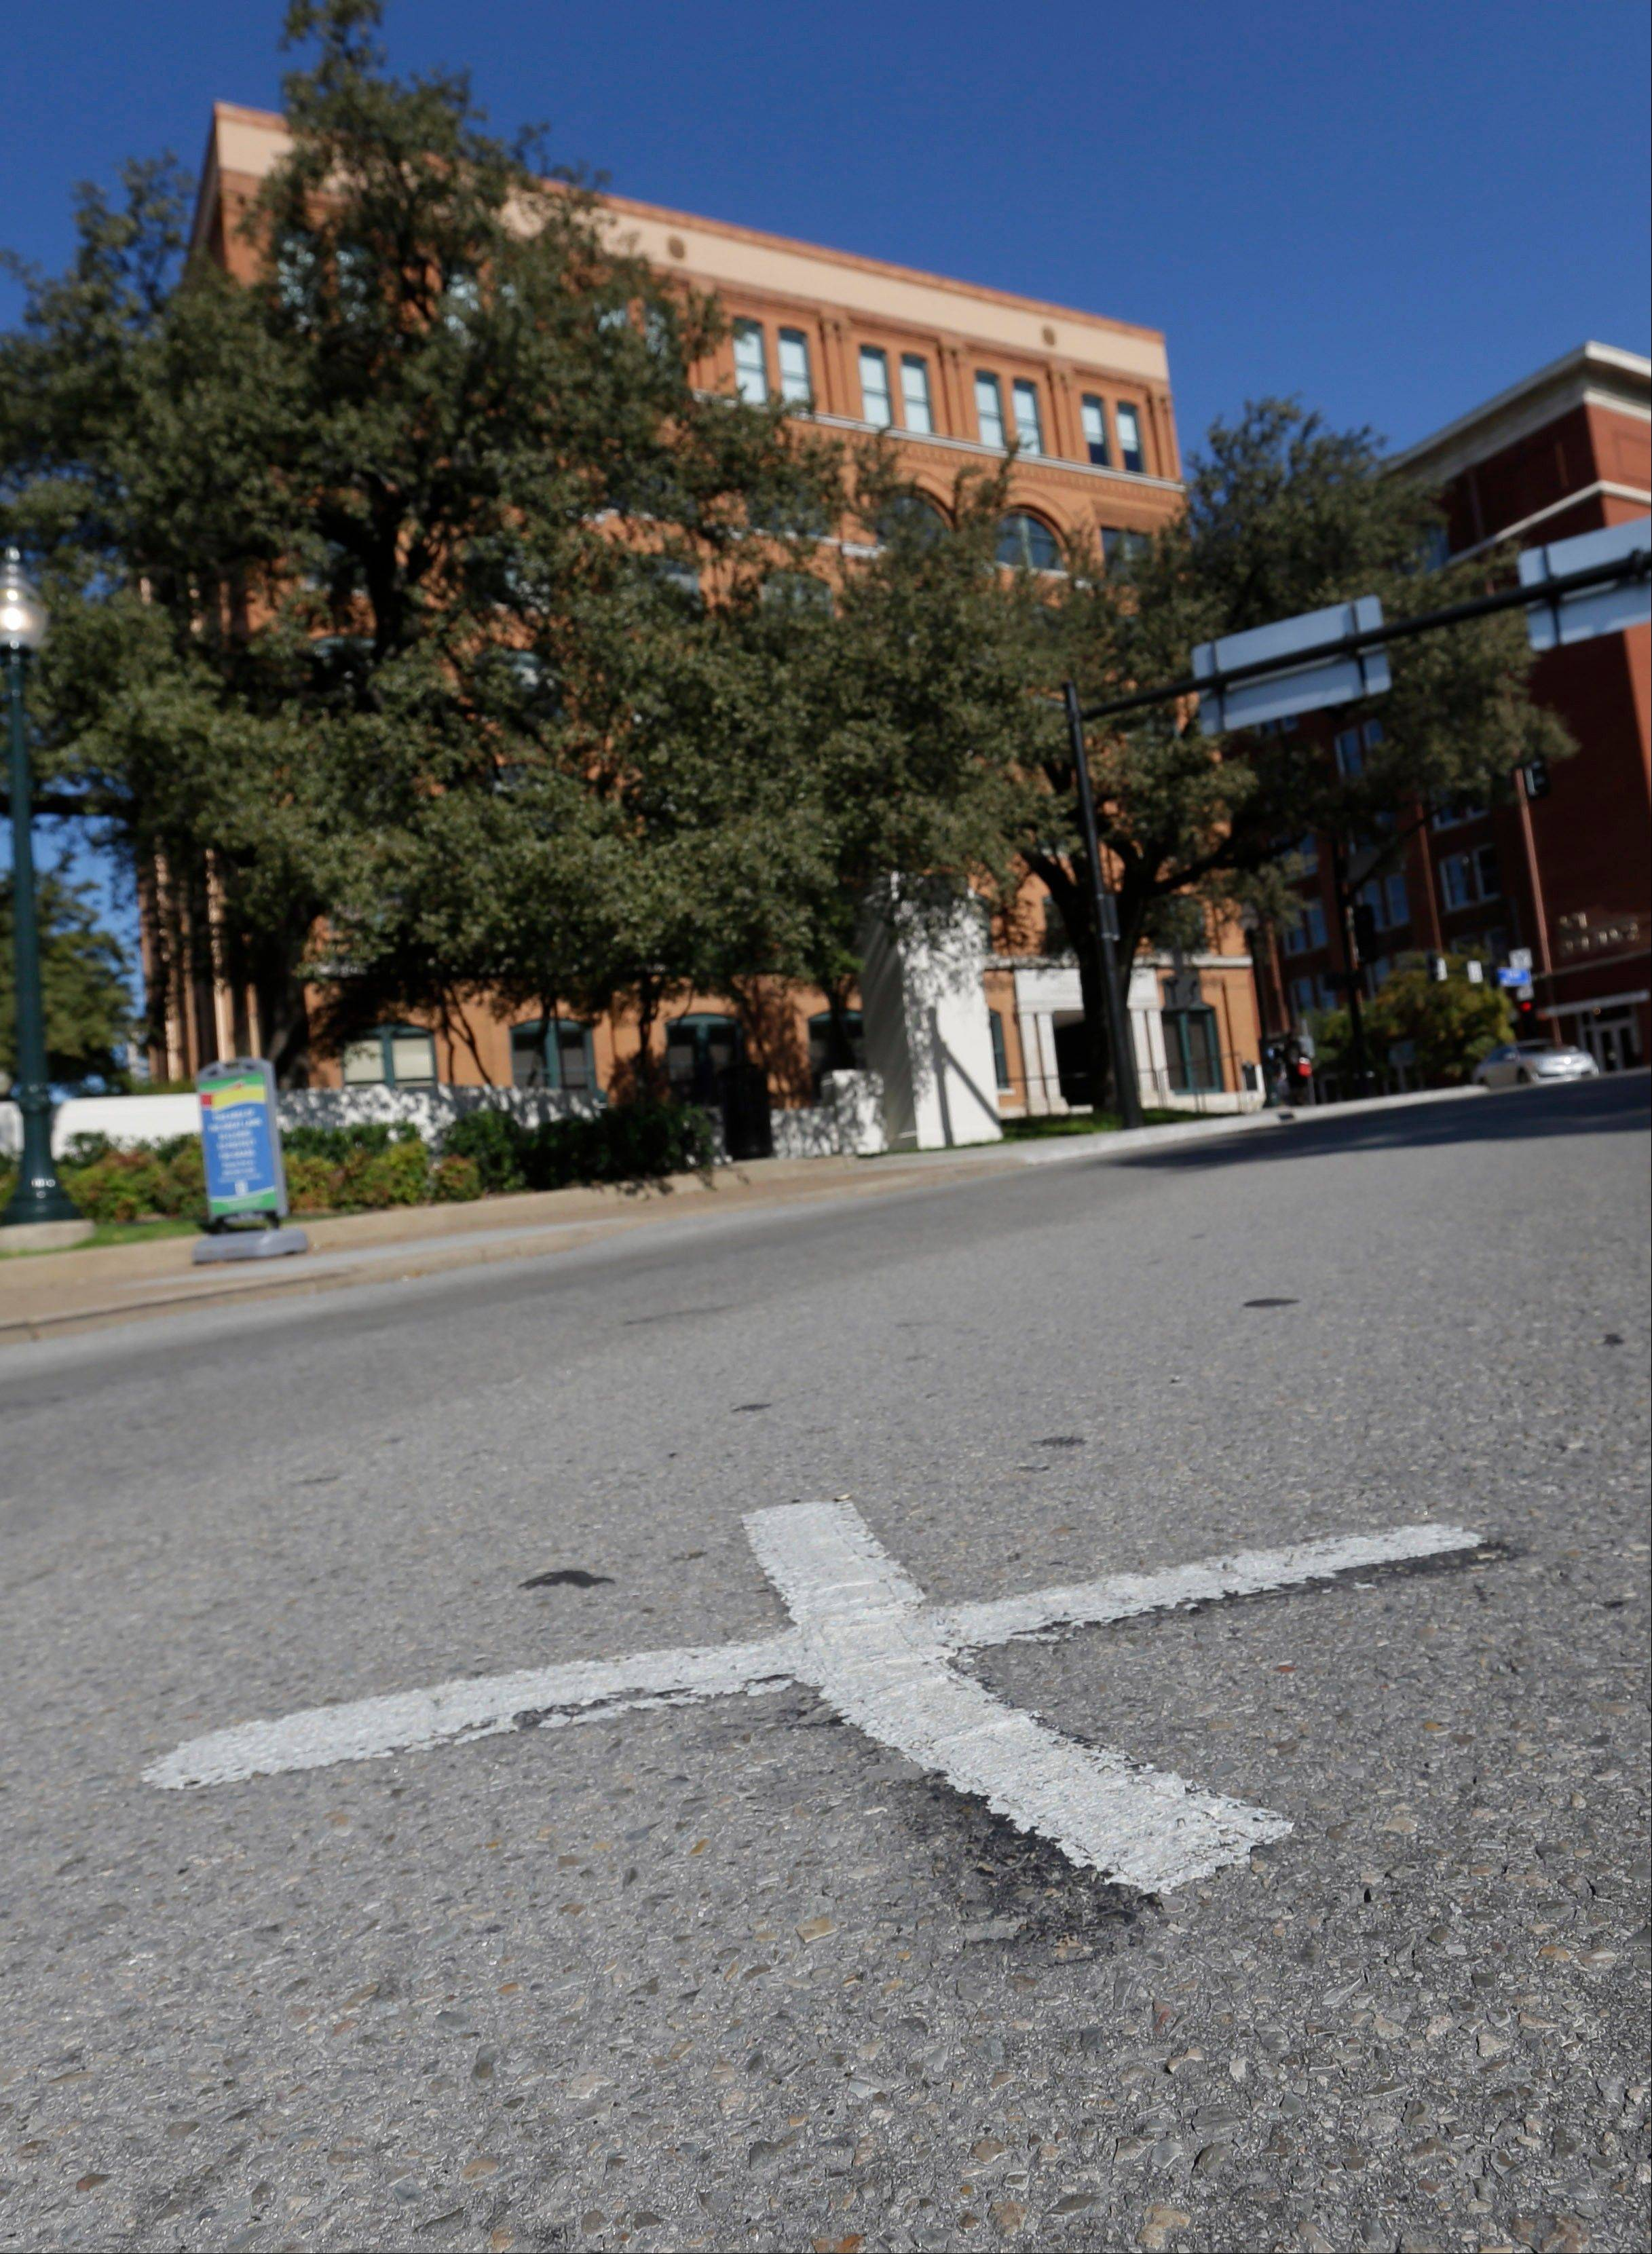 Dallas sites tied to JFK's killing still resonate